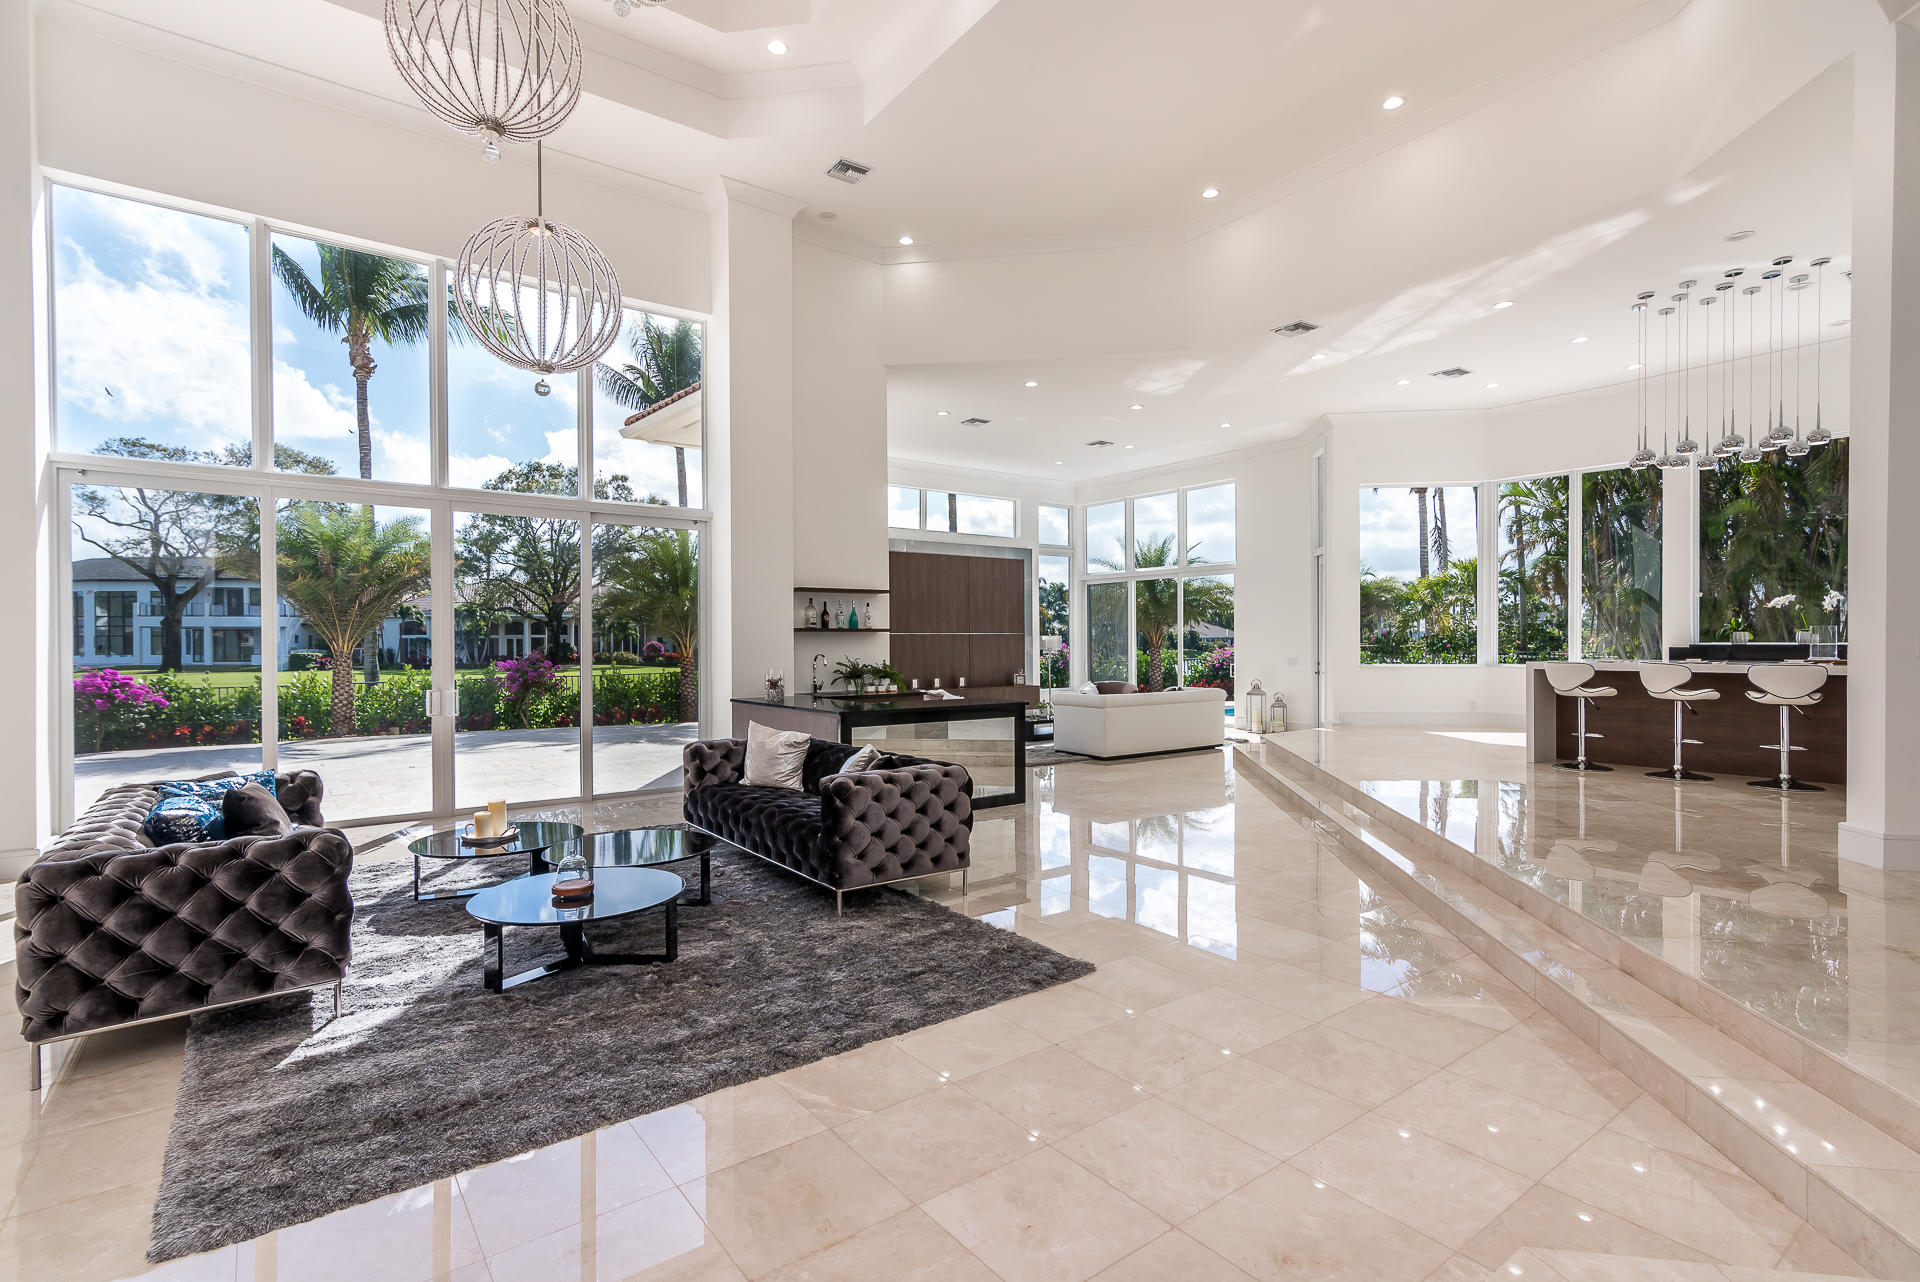 Stunning TOTALLY RENOVATED contemporary estate on an oversize lot in prestigious St Andrews Country Club with dramatic lake and golf views! Totally re-imagined in 2017 with a clean contemporary aesthetic! European finishes amaze throughout this 5-bedroom + office, 4 full/2 half bath home with 5,500 SF under air! Features include floor-to-ceiling HURRICANE IMPACT WINDOWS and DOORS; spacious open floor plan with 20' ceilings and dramatic sweeping staircase; designer kitchen with full Miele appliance suite and high gloss cabinets; wet bar; custom light fixtures; enormous first floor master suite with library; stunning baths; marble and hardwood flooring throughout; travertine marble driveway and pool deck; LED lightning inside and out. This impeccable home is move-in ready.